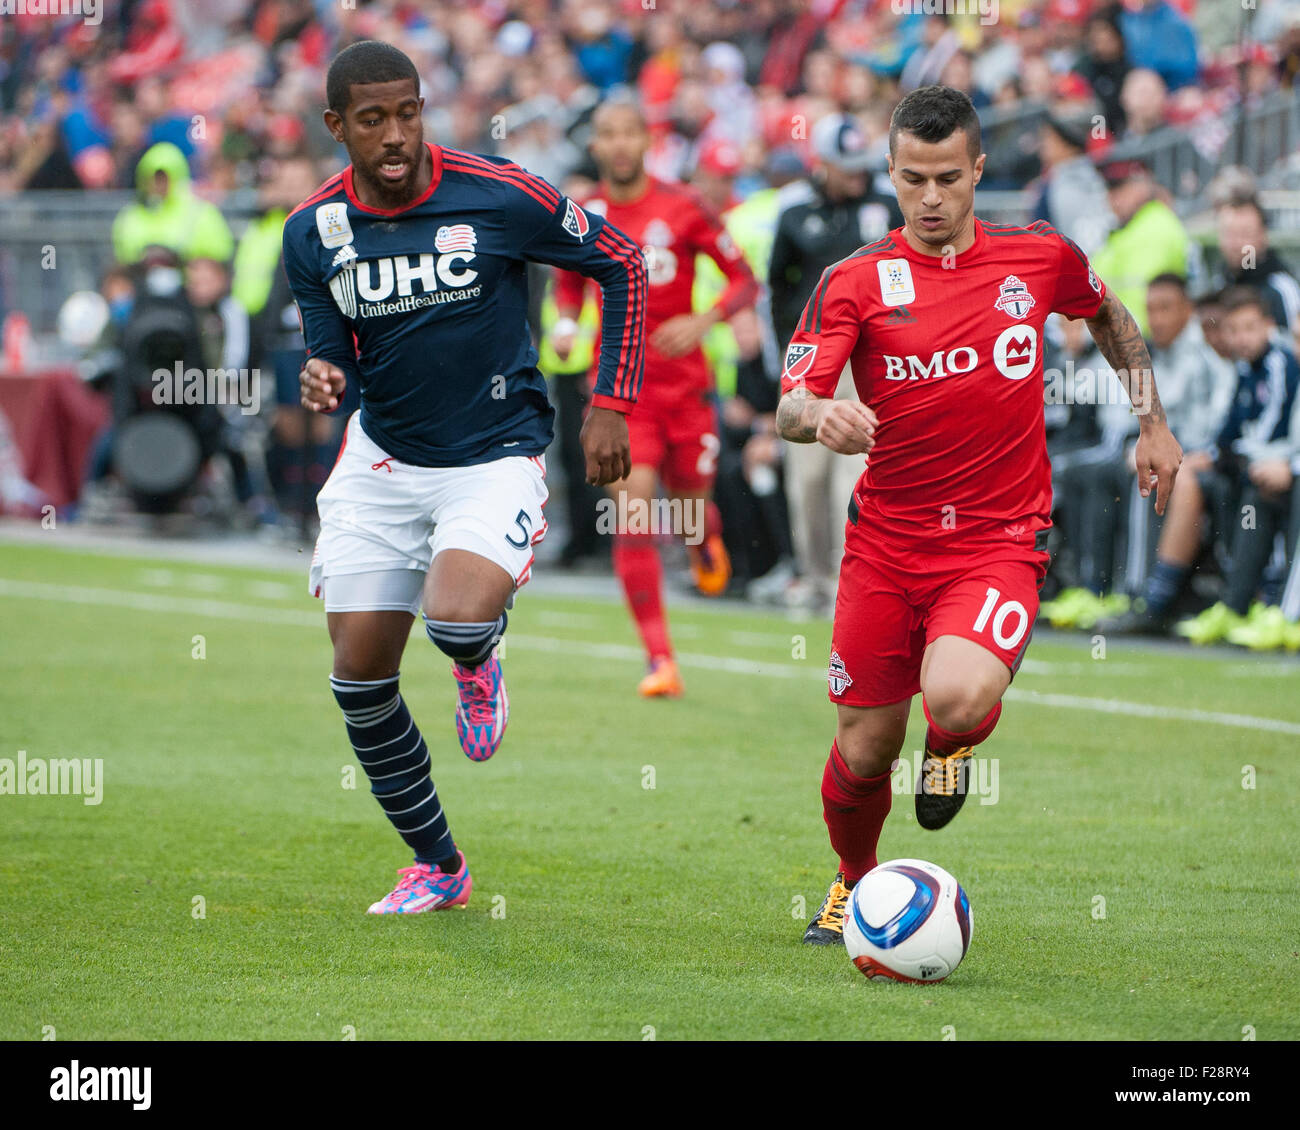 Toronto, Ontario, Canada. 13th September, 2015. New England Revolution defender Jeremy Hall (5) moves on Toronto - Stock Image